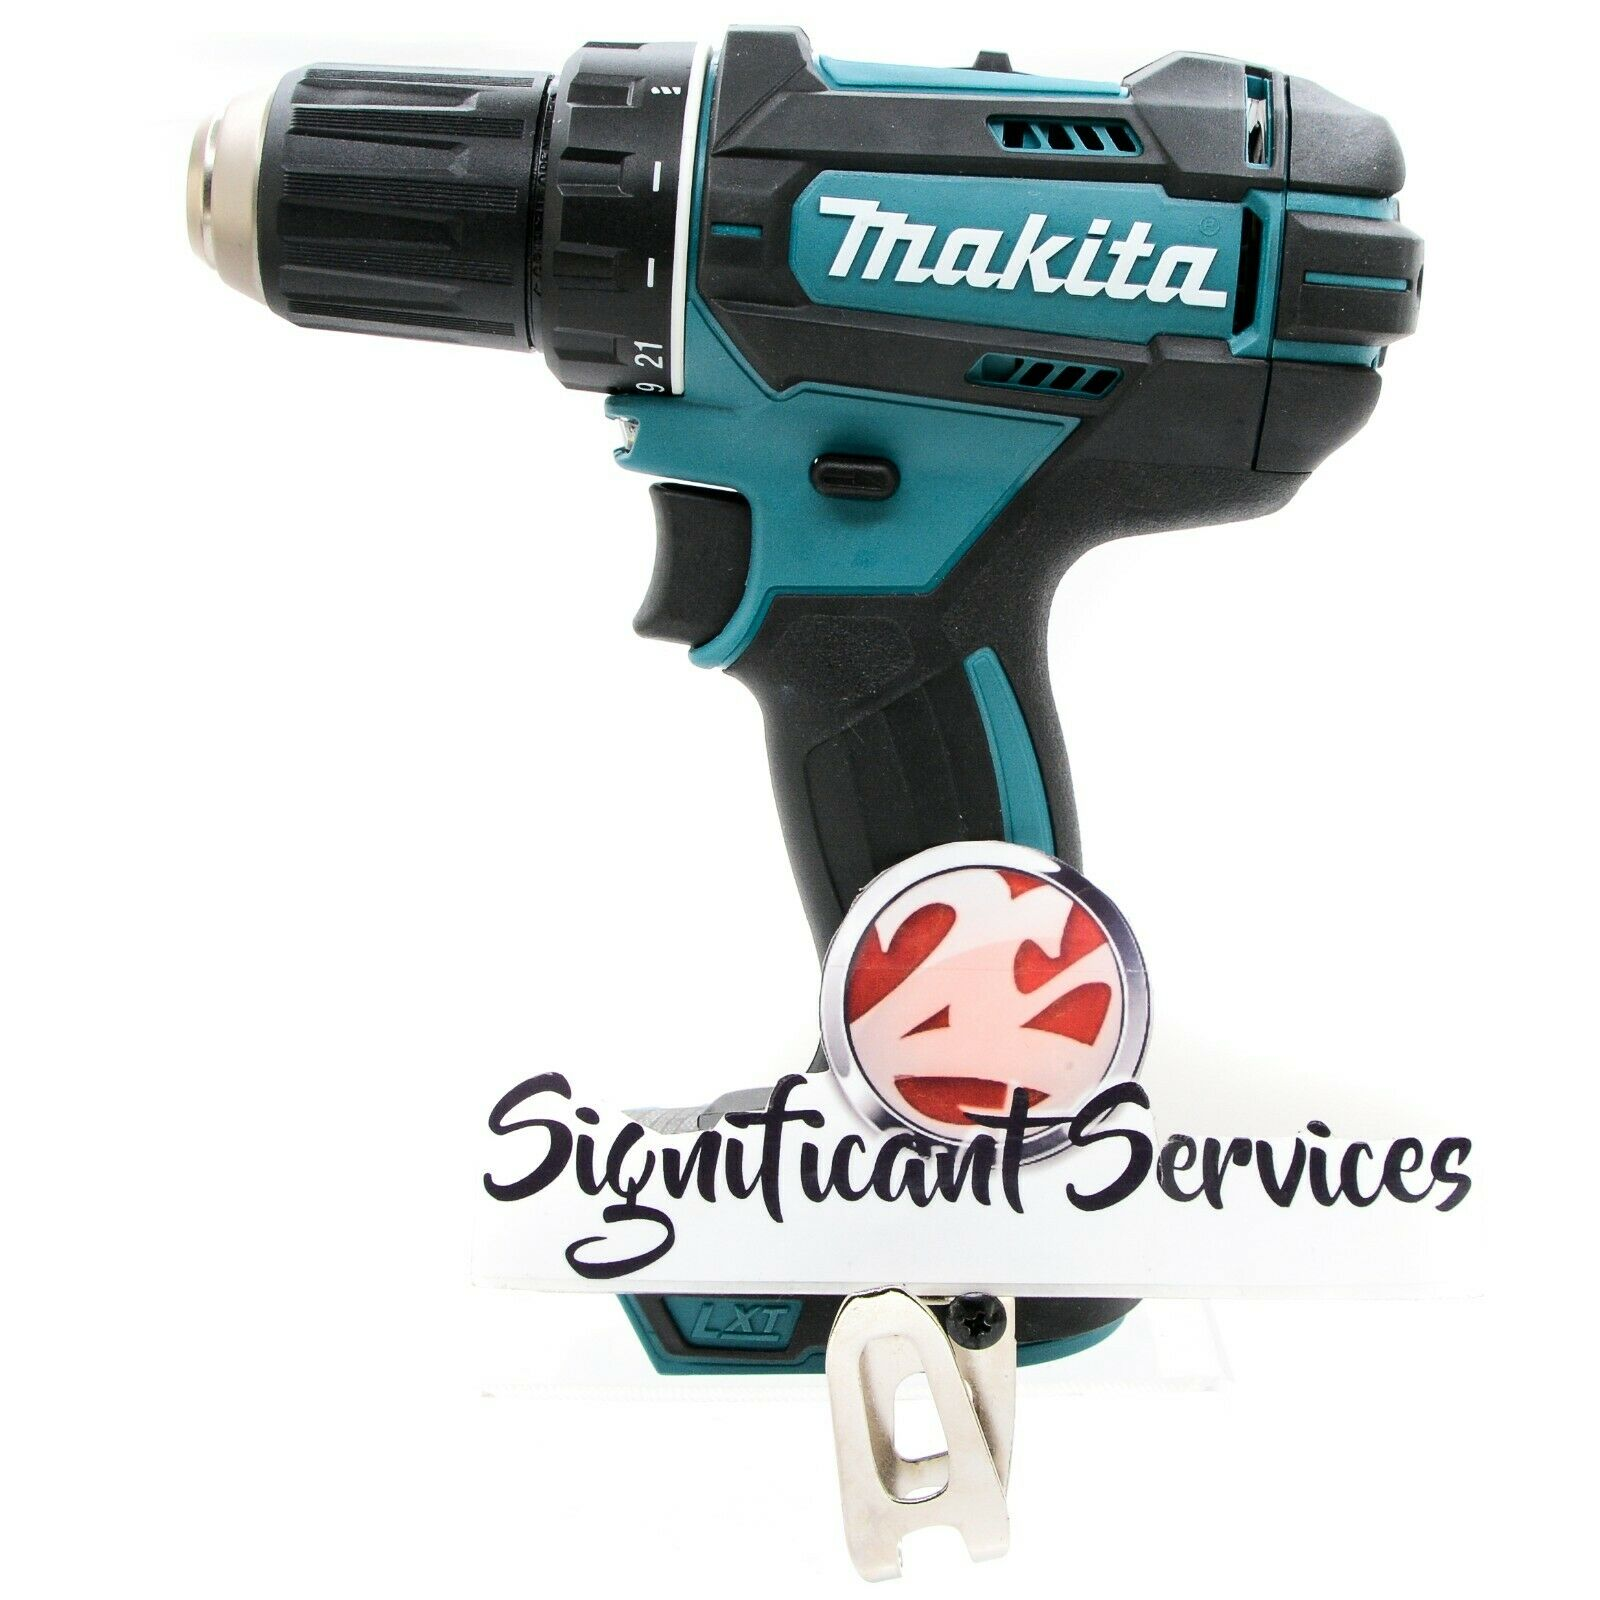 significantservices NEW Makita XFD10Z 18V LXT Li-Ion 1/2 2 Speed Cordless Drill Driver Tool Only